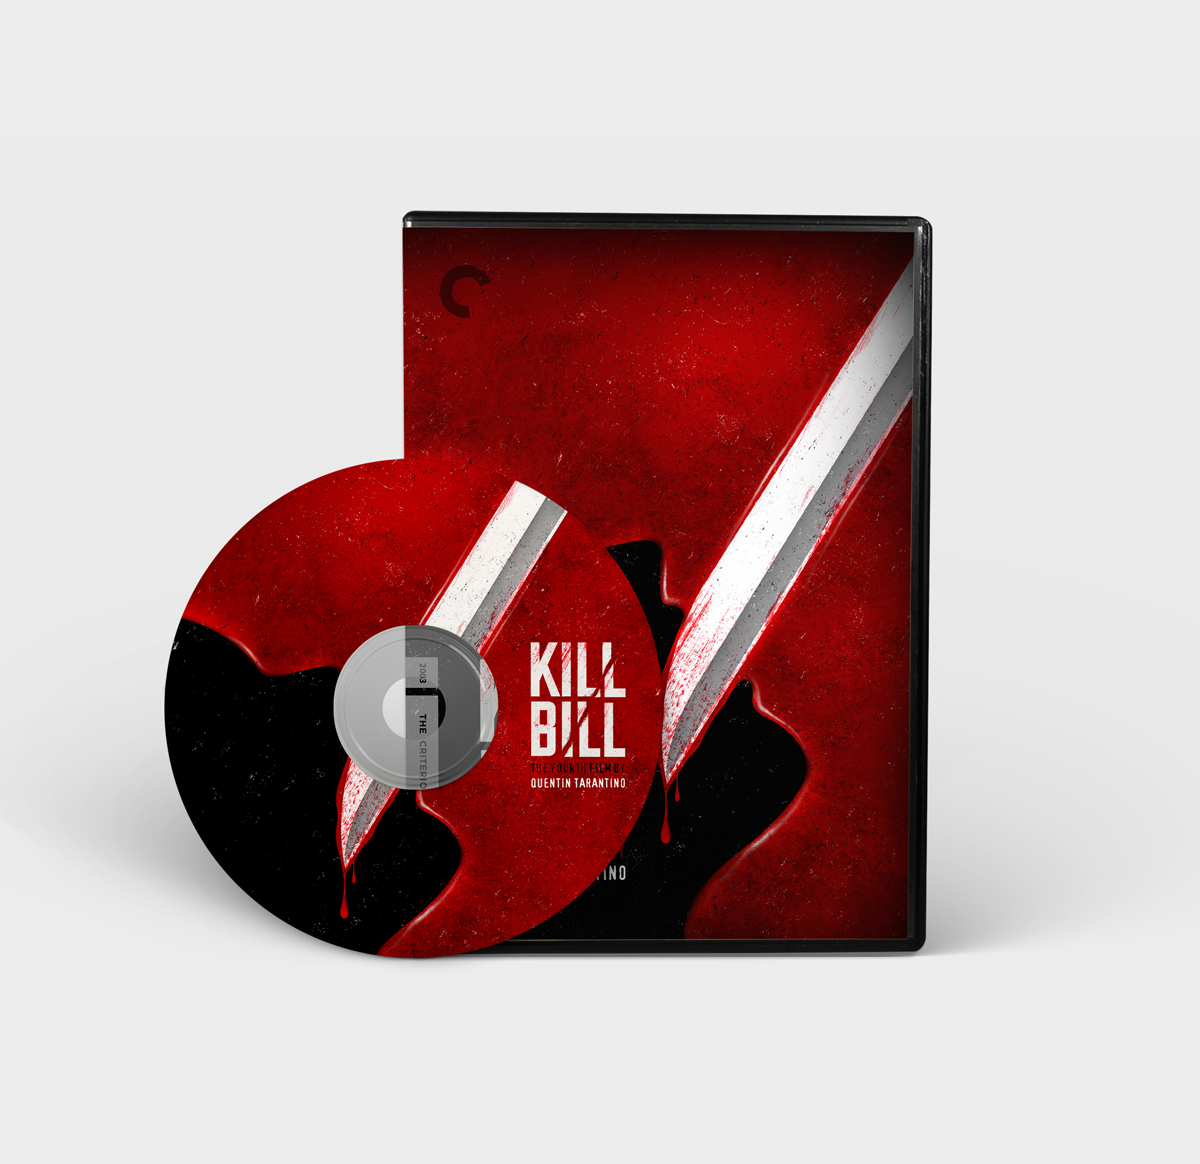 Criterion-Covers-kill-bill-disk-Thanh-Nguyen-design